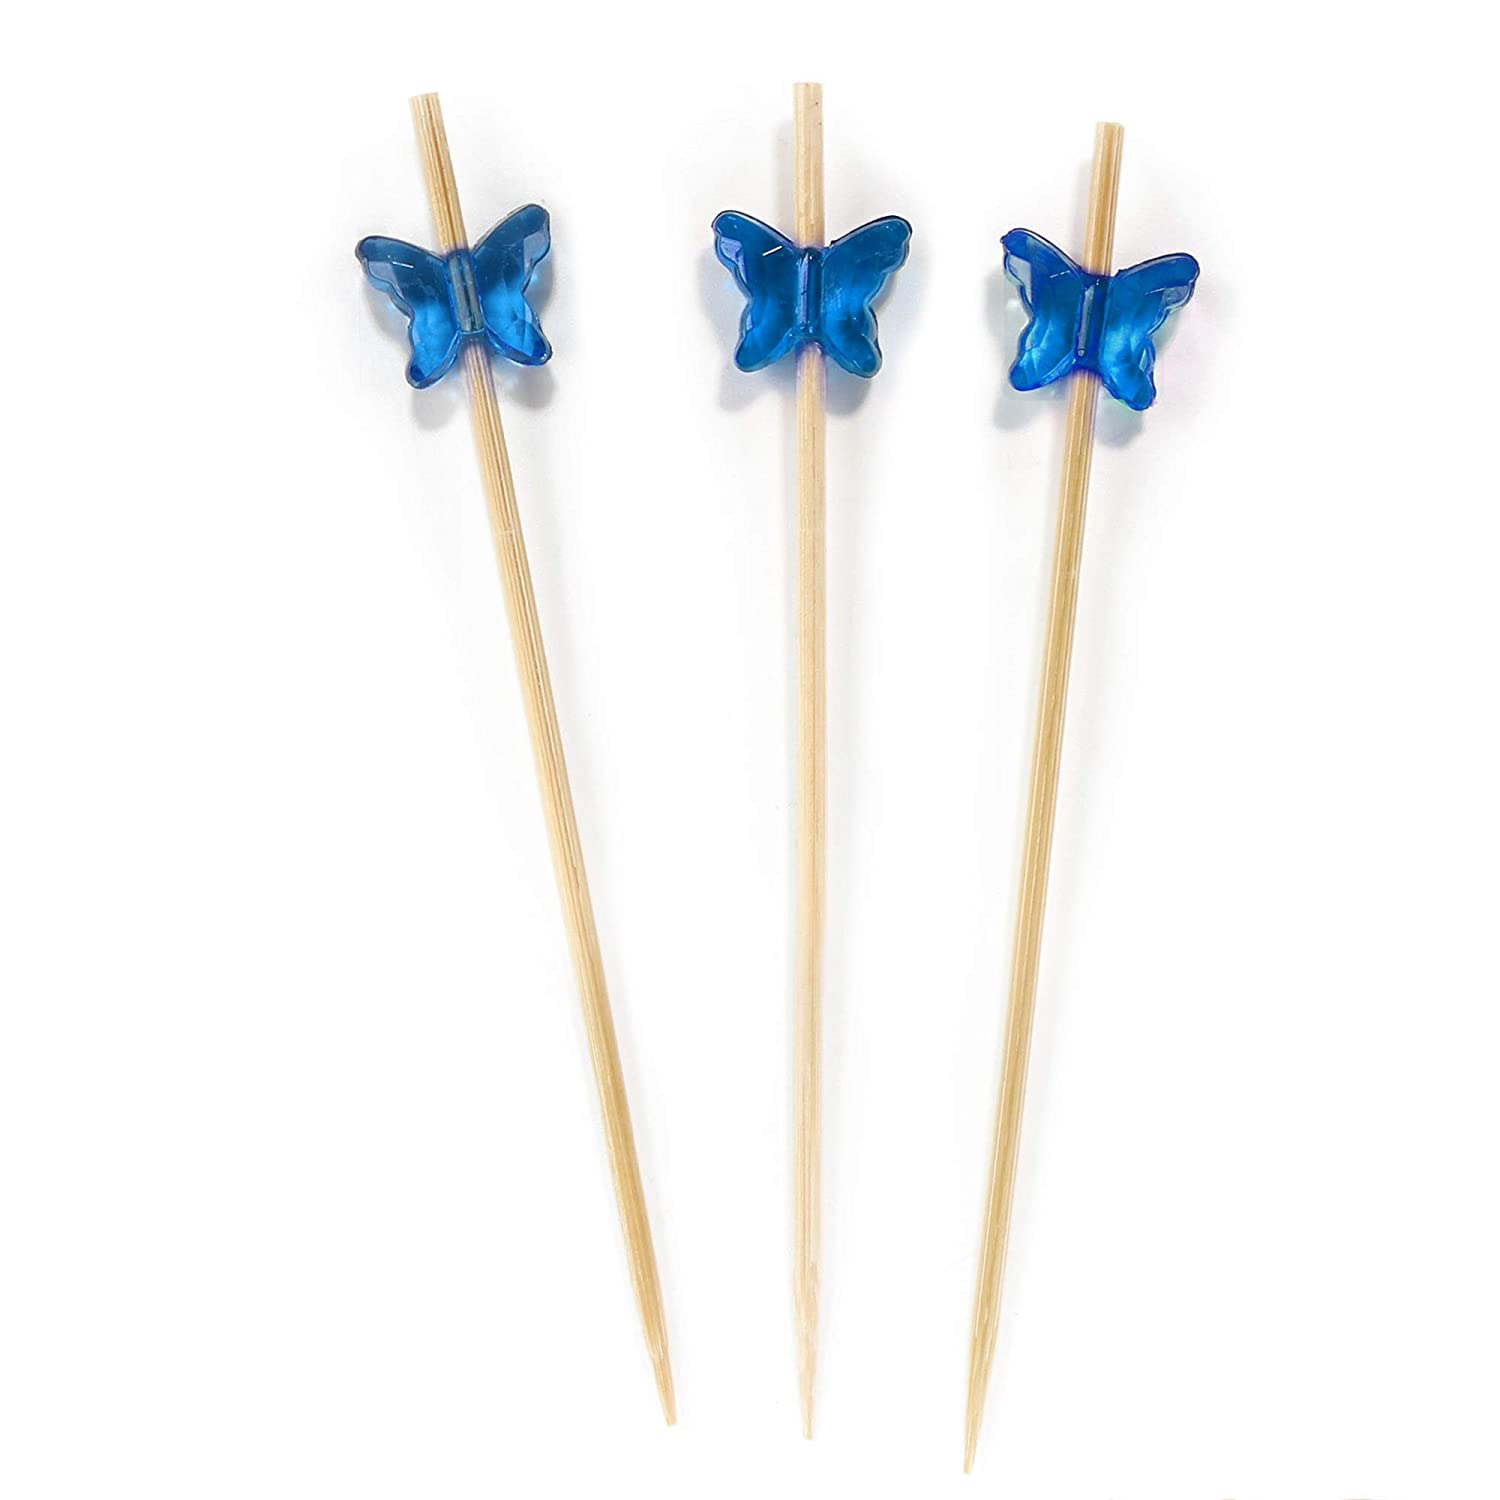 Holidays Restaurants or Buffets Party Supplies BambooMN 3.9 Decorative Acrylic Butterfly End Bamboo Cocktail Fruit Sandwich Picks Skewers for Catered Events 100 Pcs Holiday/'s 6955114904154a